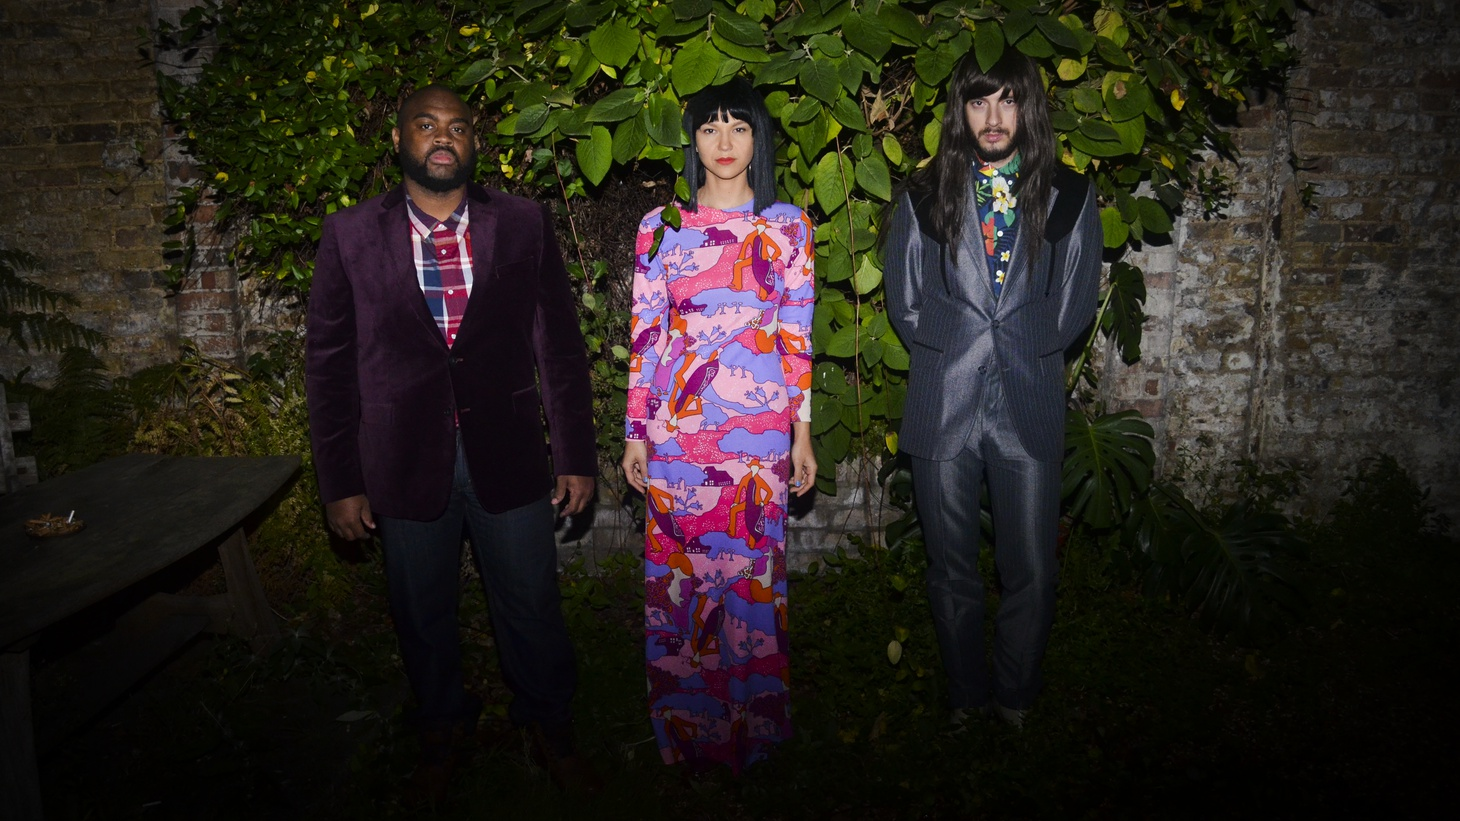 """The Texas trio with a nomadic sound Khruangbin recently shared the new """"Mordechai Remixes"""" album with fans. Songs find new life as they team up with friends and favorites like Ron Trent, Knxwledge, and Quantic (Cut A Rug Mix) on """"Pelota."""""""